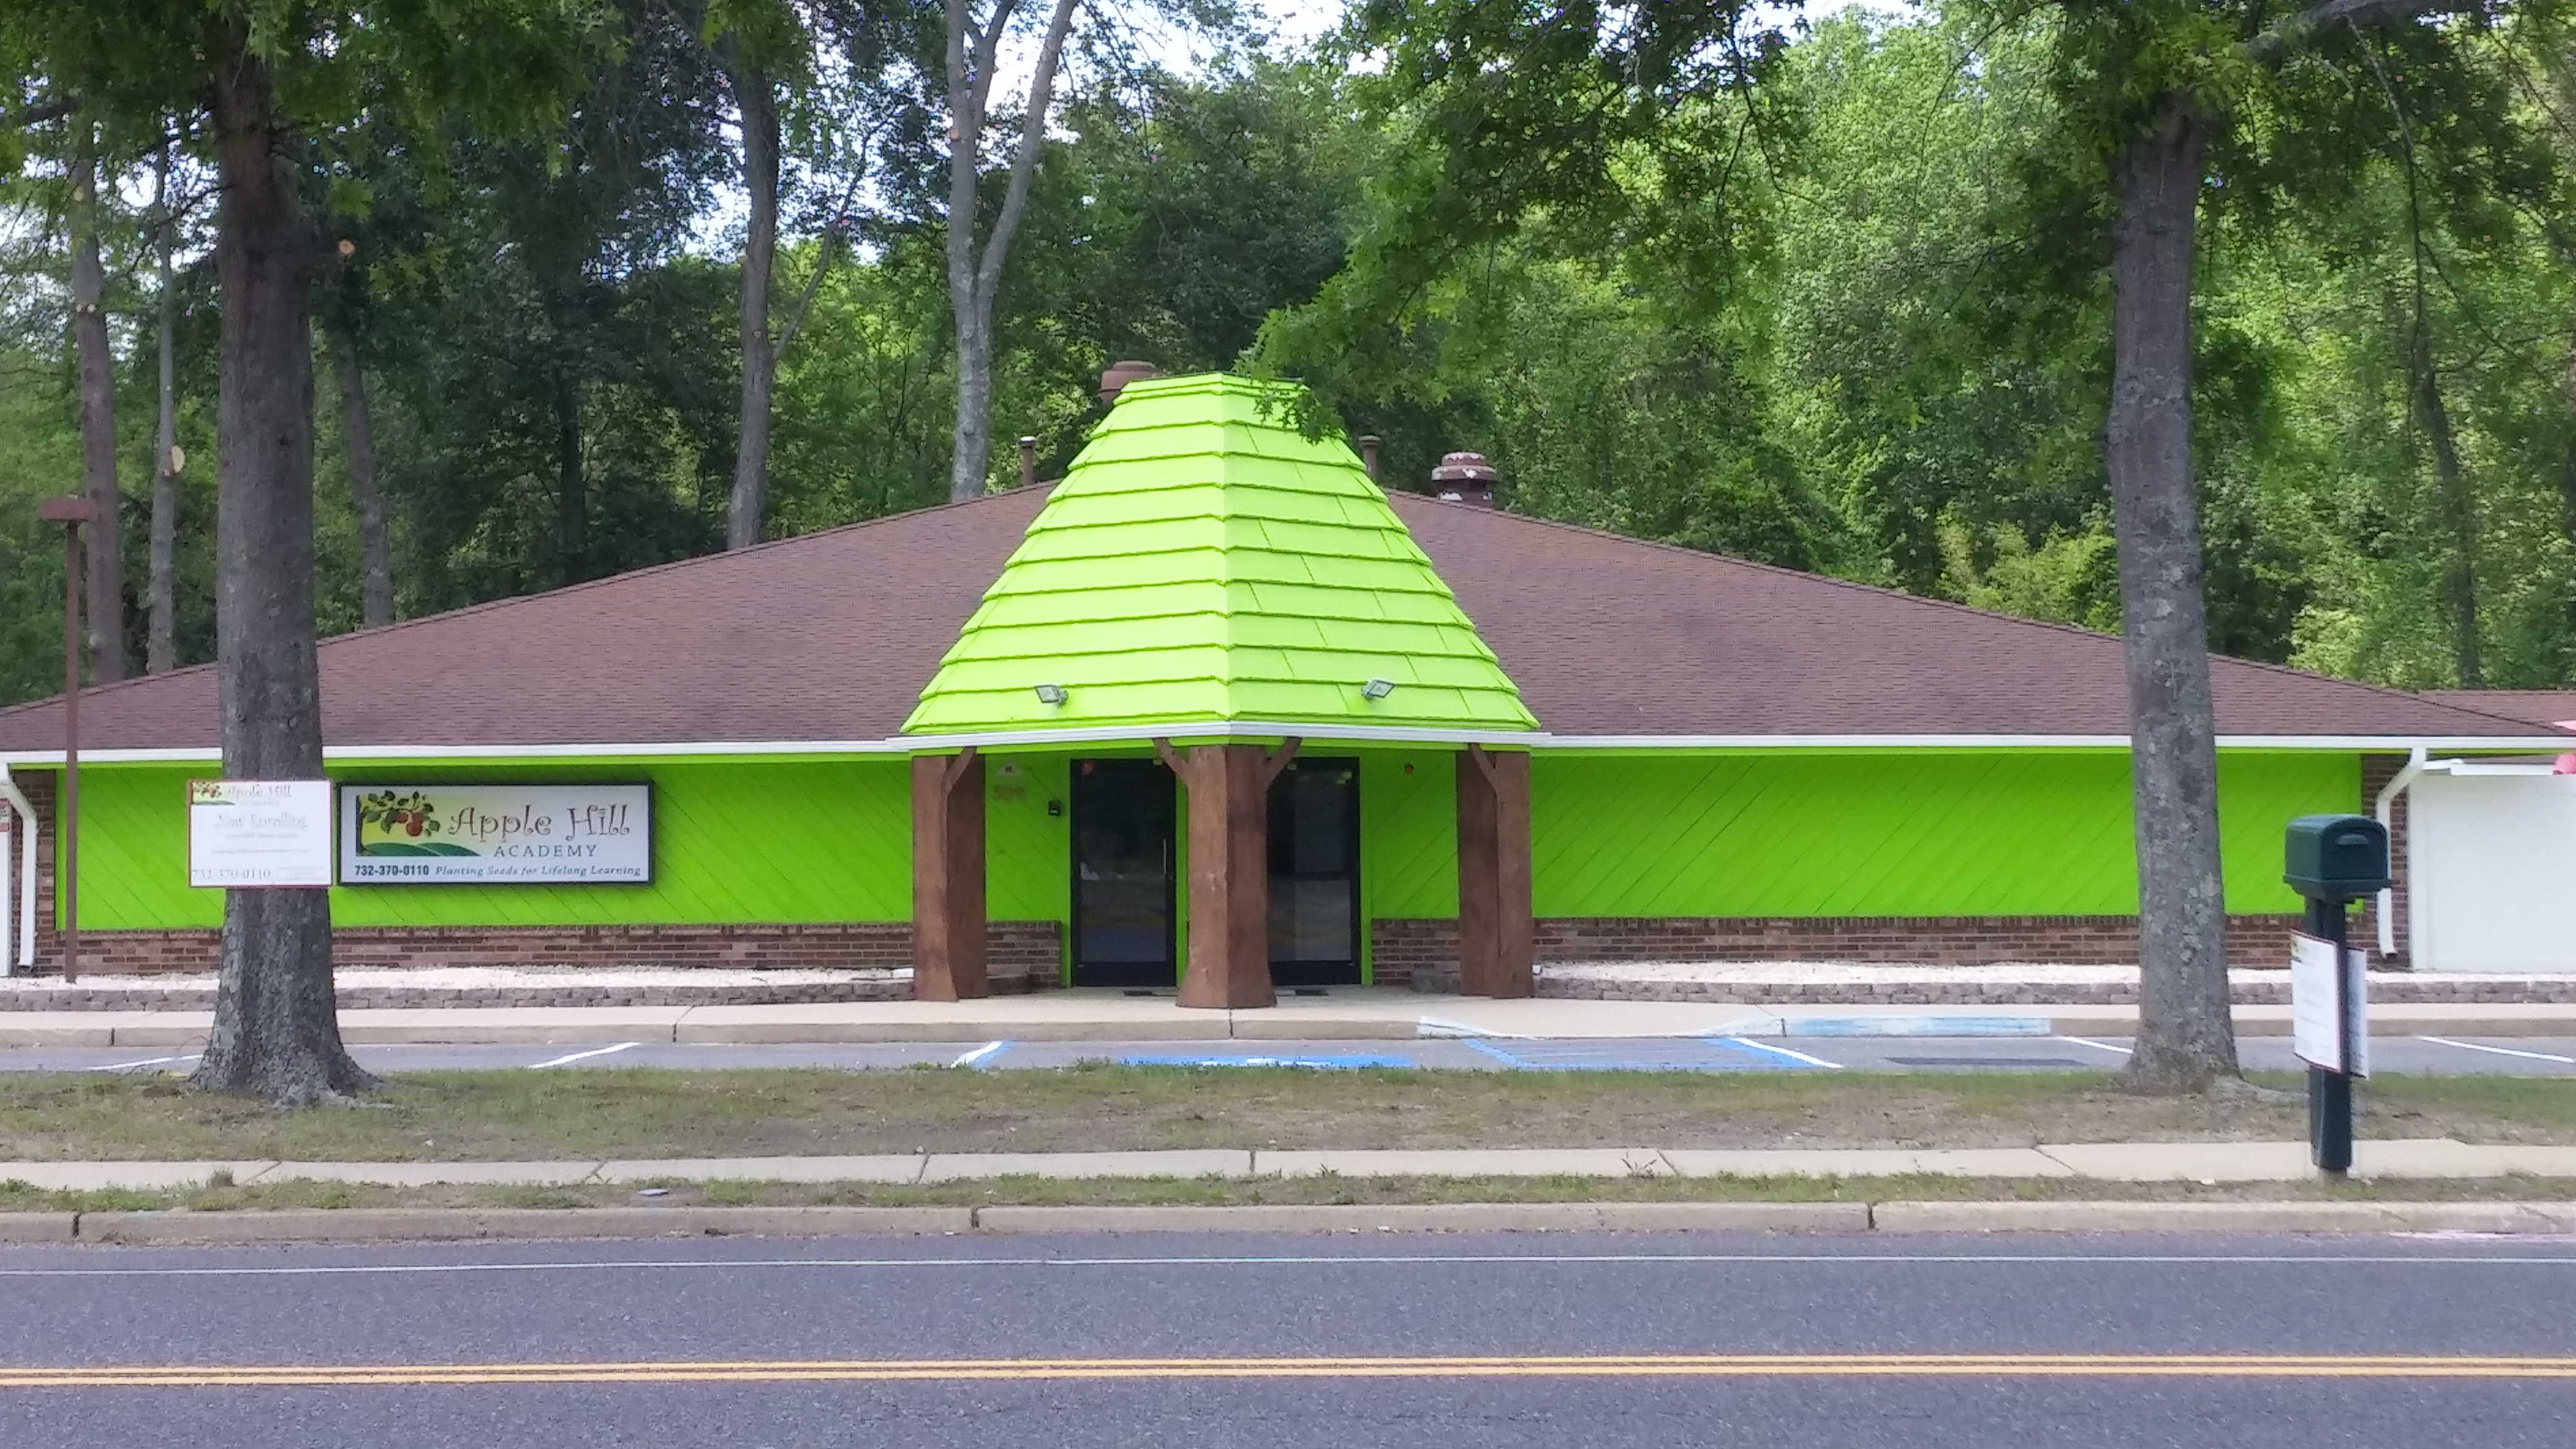 Picture of a child care learning center in Howell, NJ